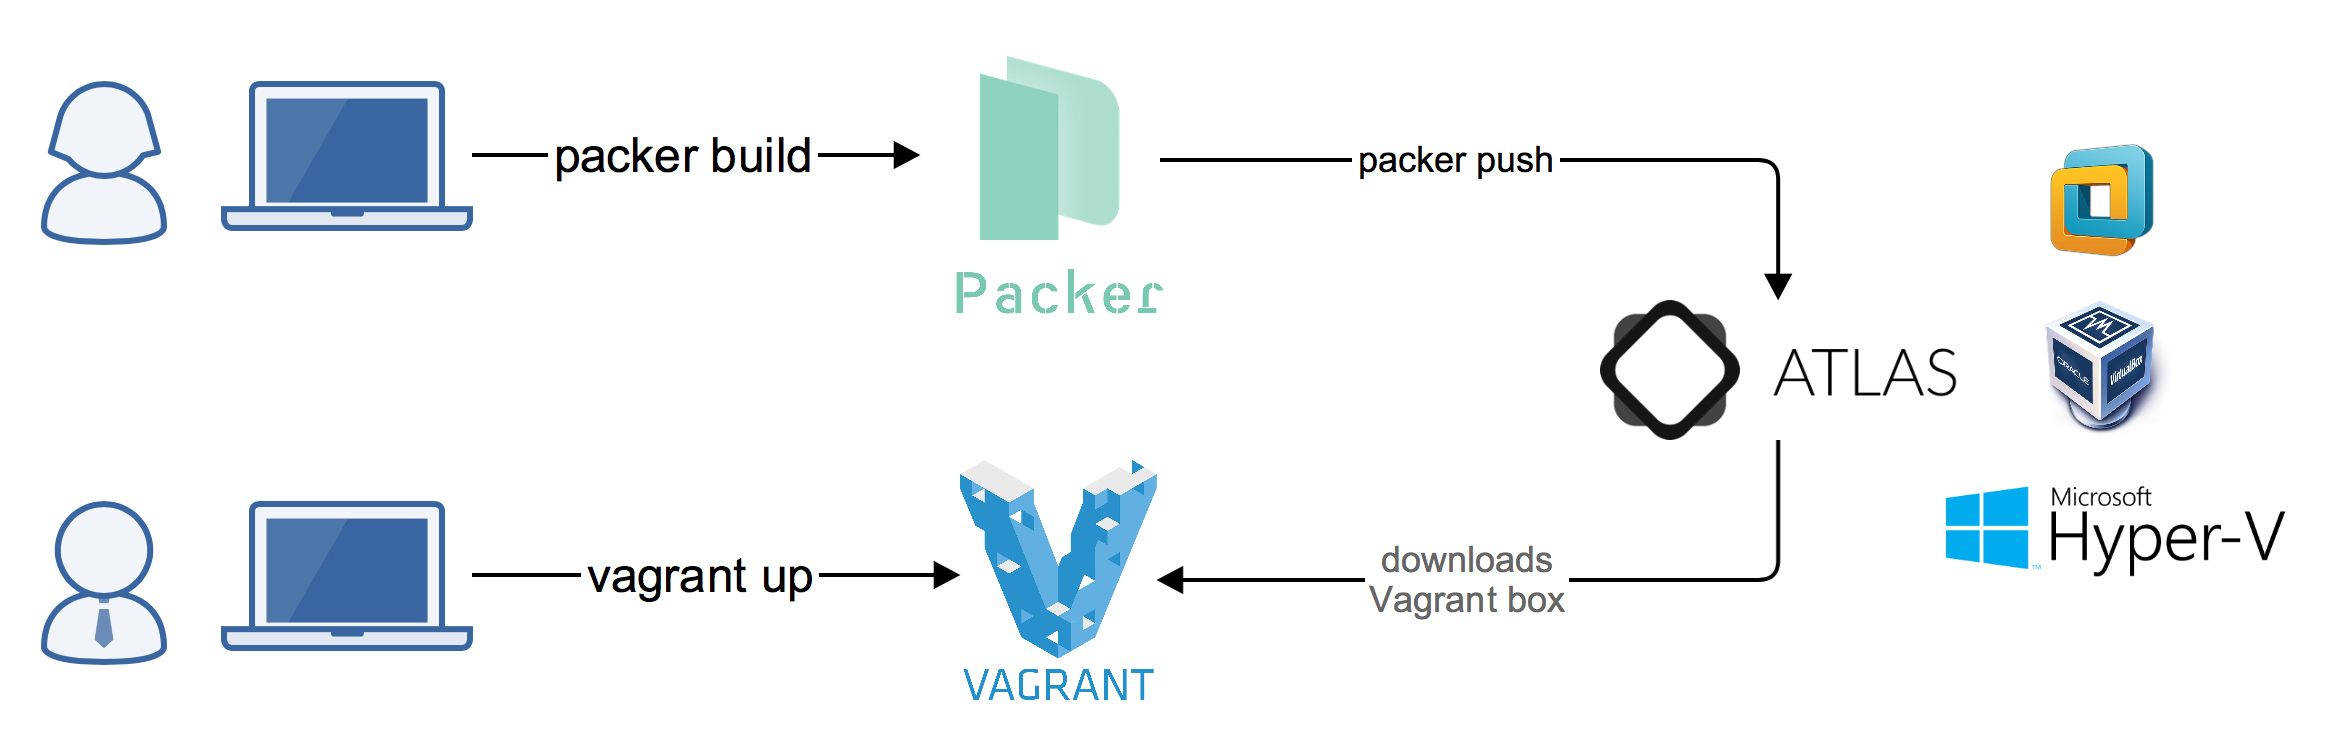 packer atlas vagrant